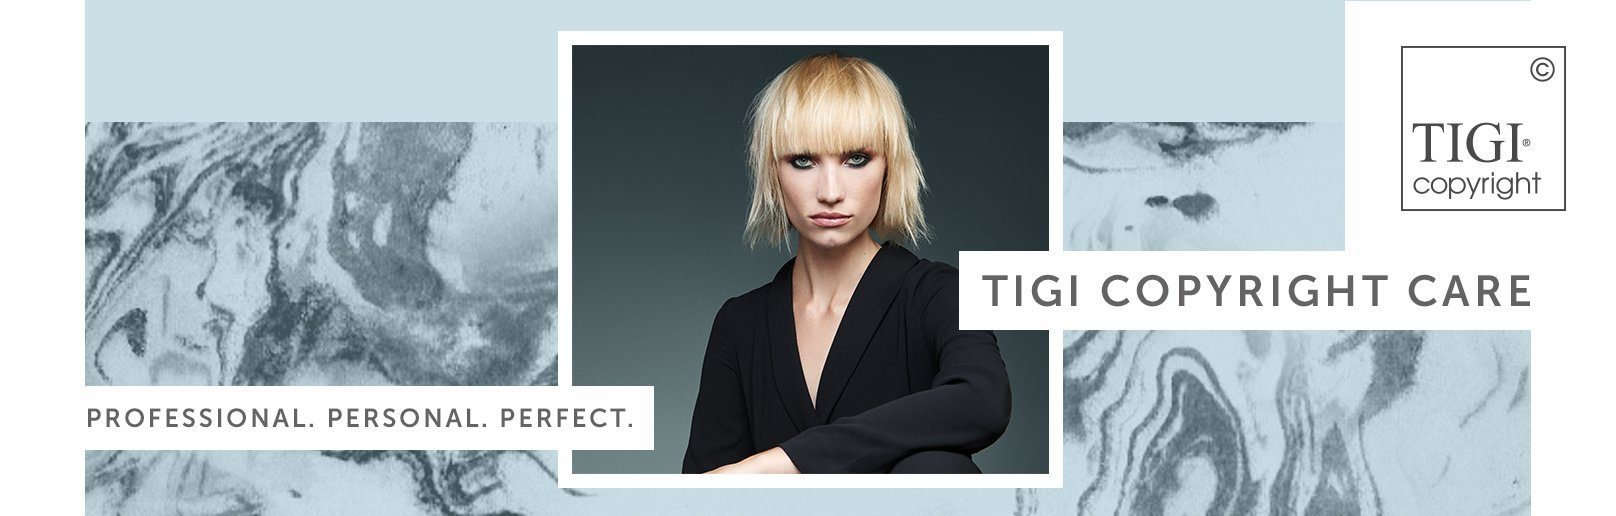 TIGI Copyright Care available now at Forresters Hair Salons Joanna